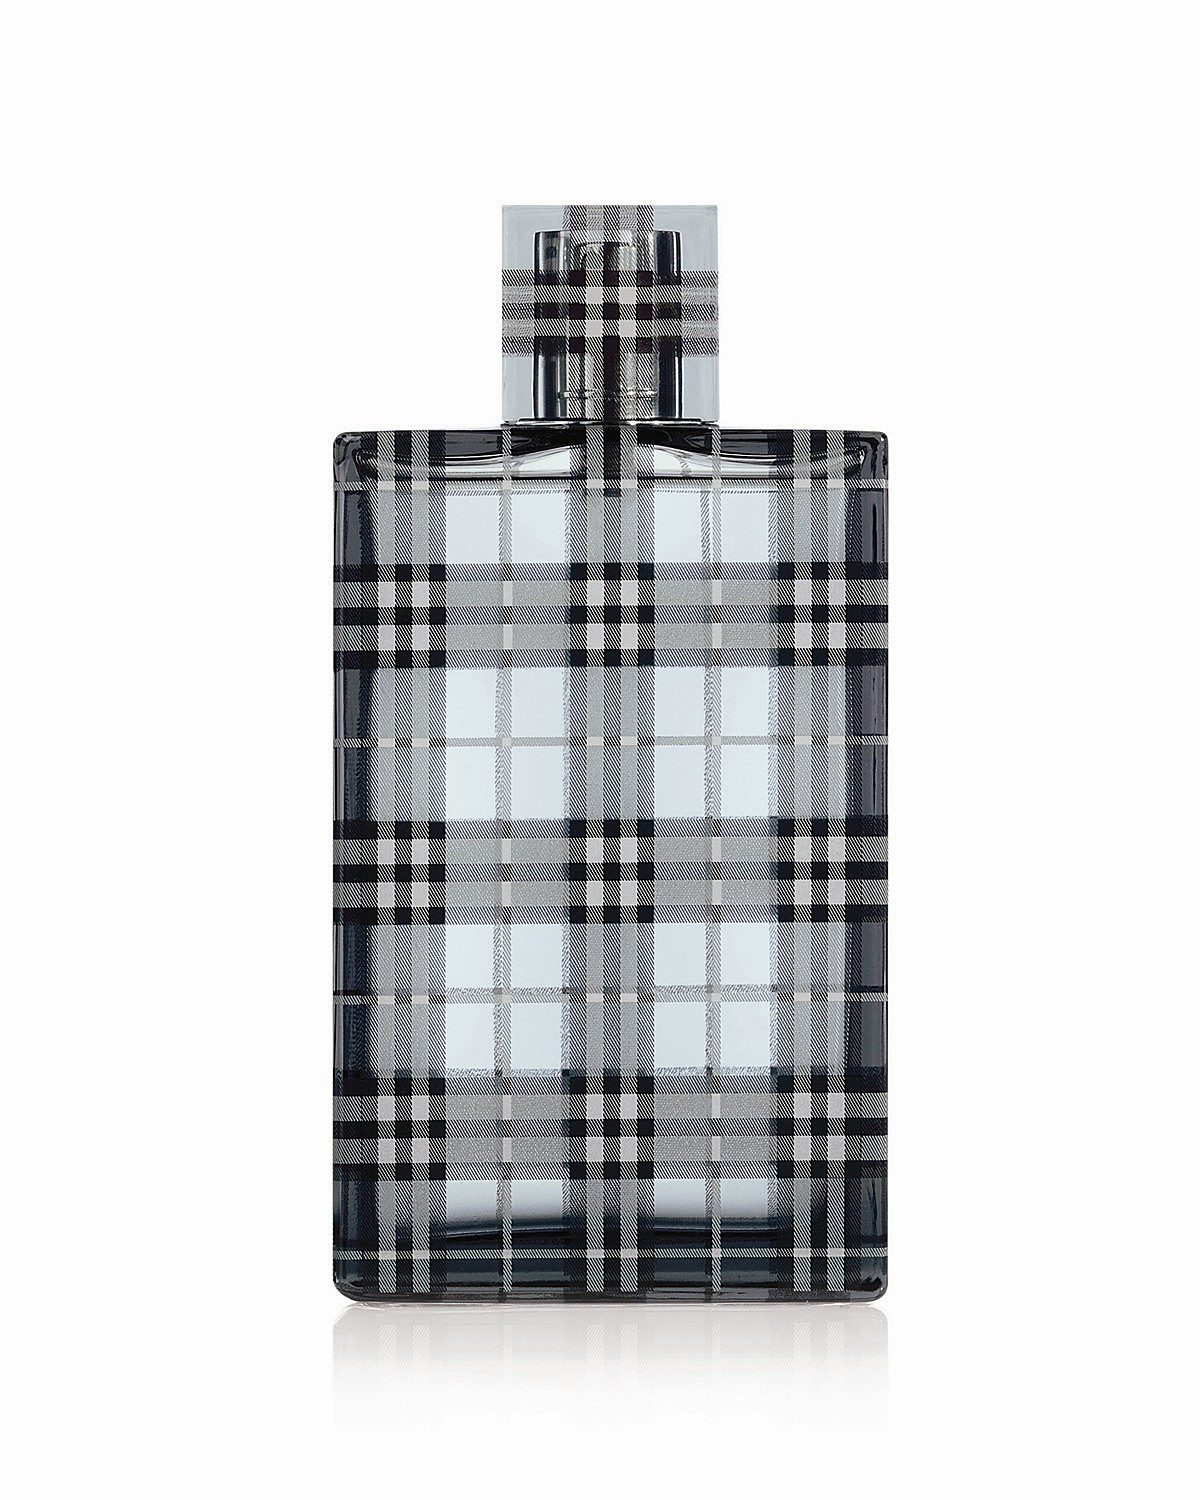 burberry perfume outlet cqnn  burberry perfume outlet